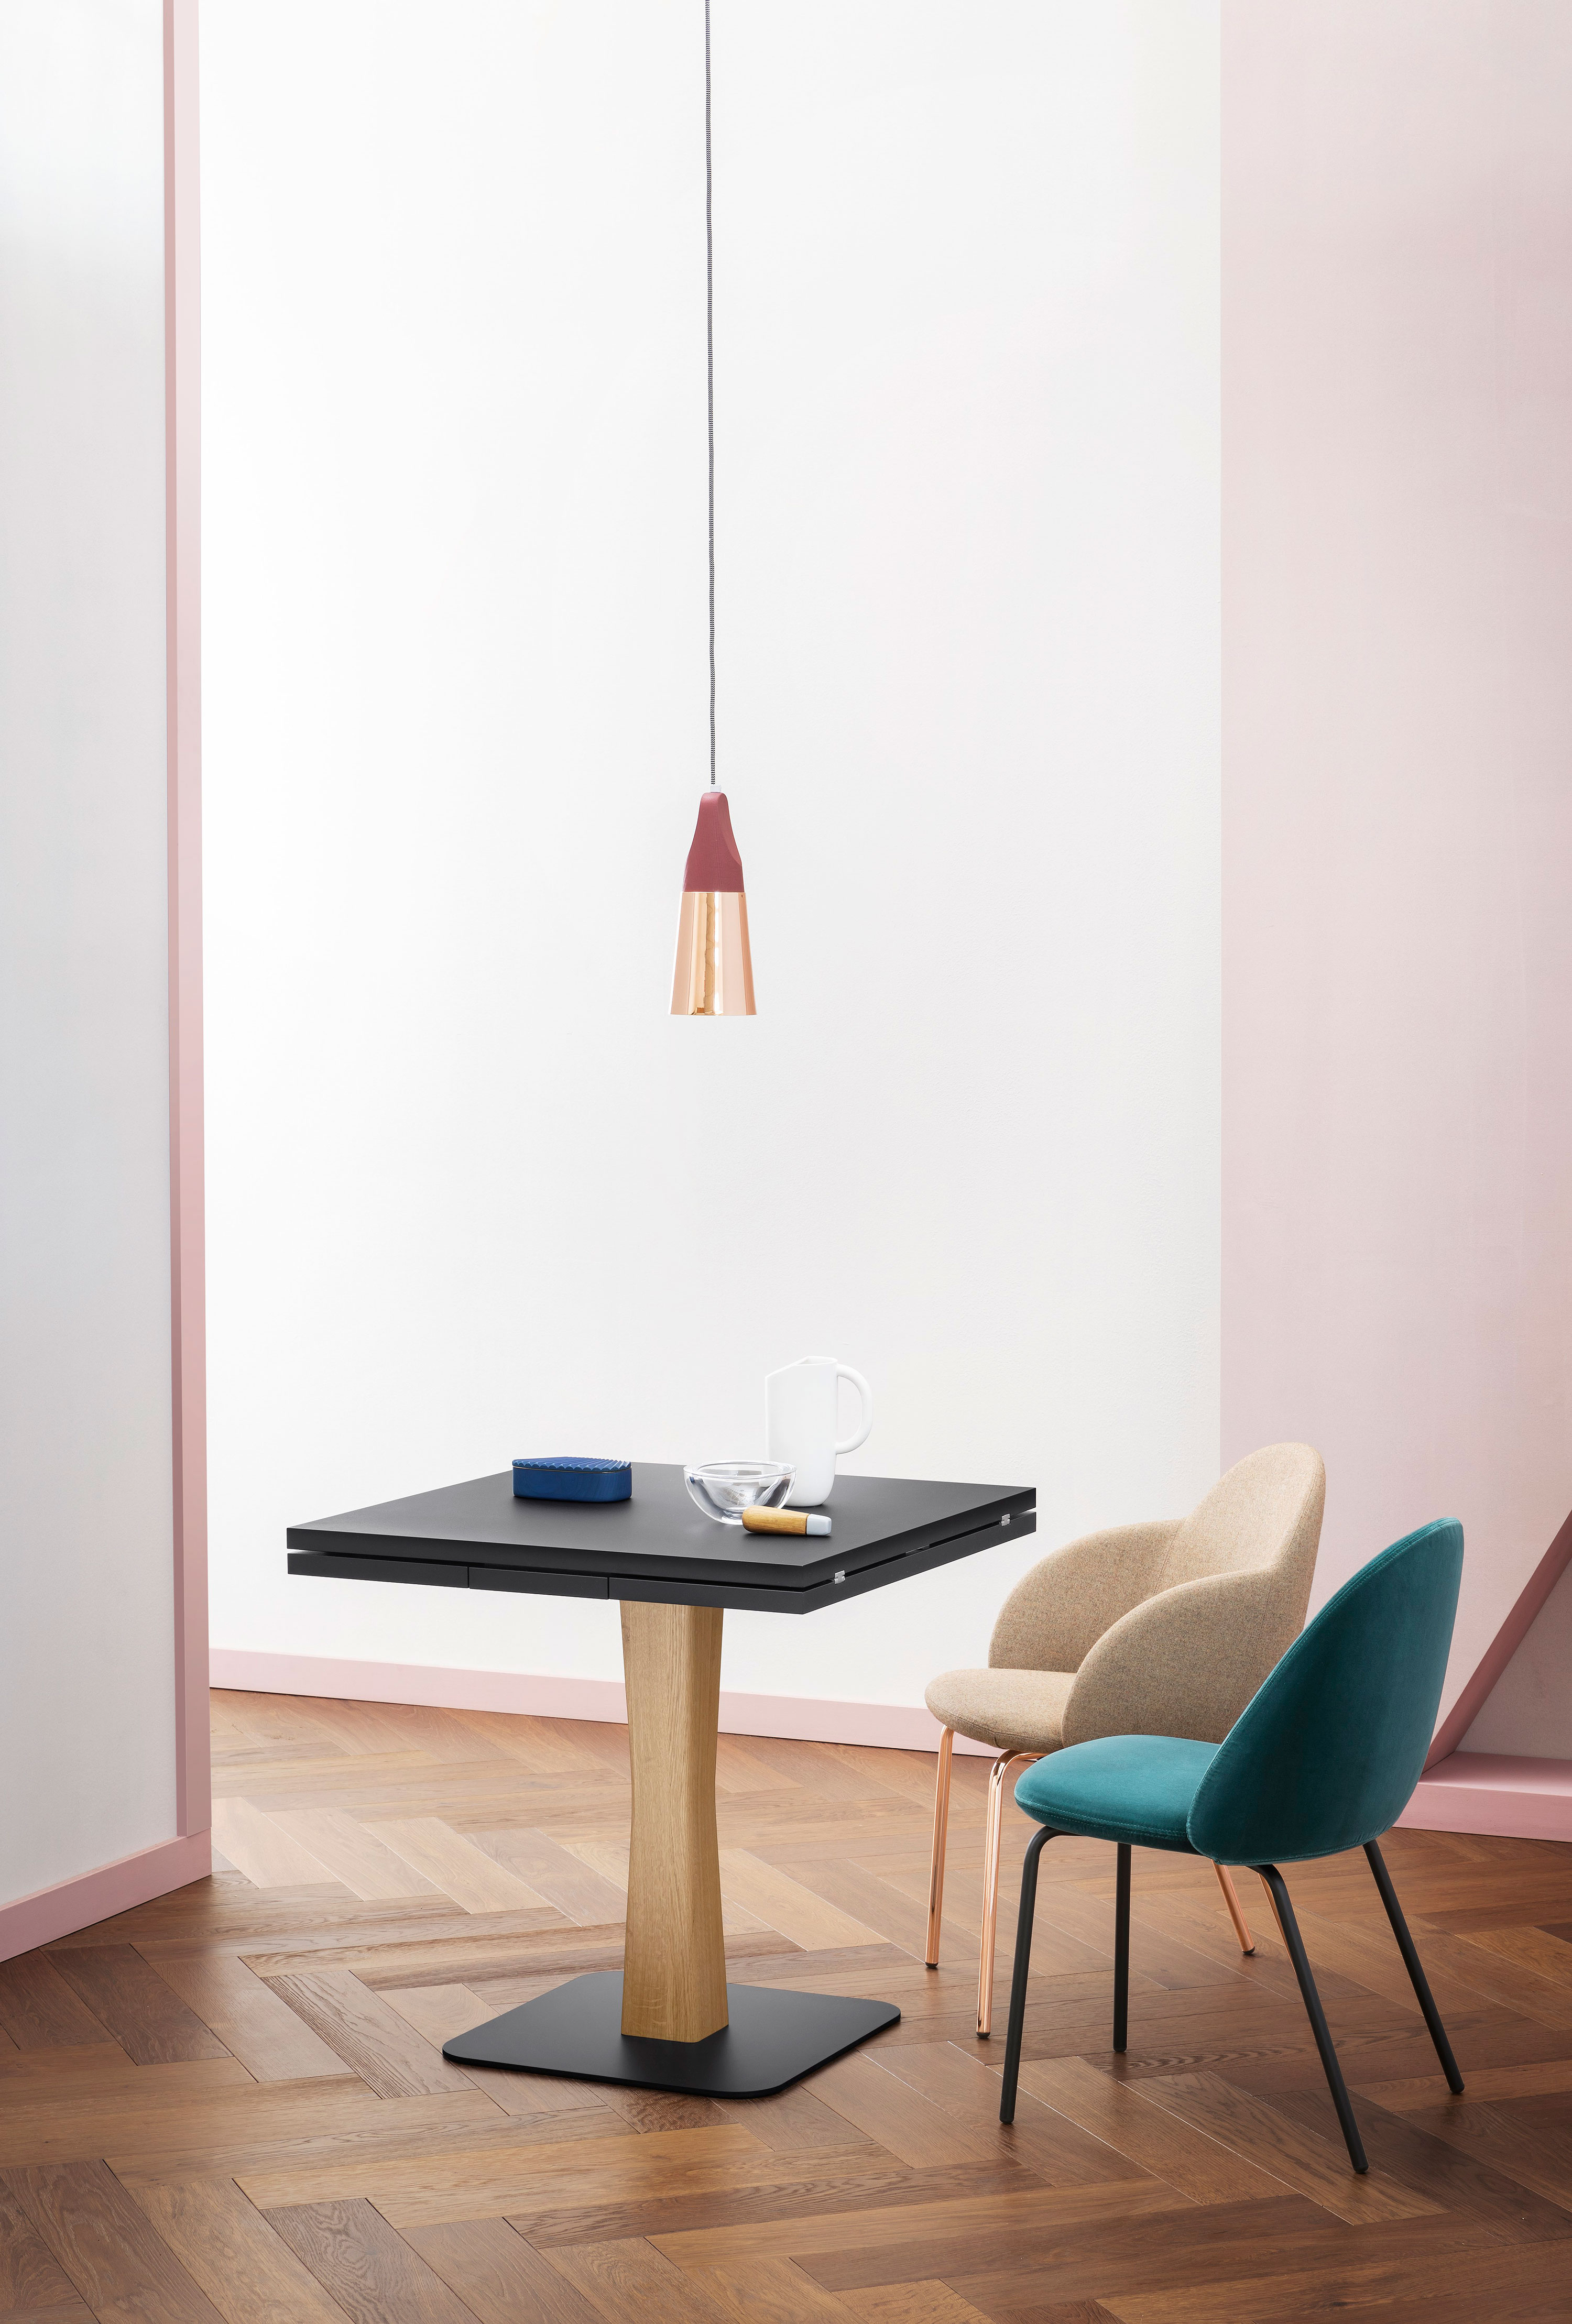 Gualtiero Extendable Table - Gualtiero is designed for smaller, more intimate spaces, from bistros to small apartments, finding the spot for an iconic, practical table. A range of materials, colours and sizes are available in a number of combinations. Prices may vary. Please enquire for full details.    Matter of Stuff